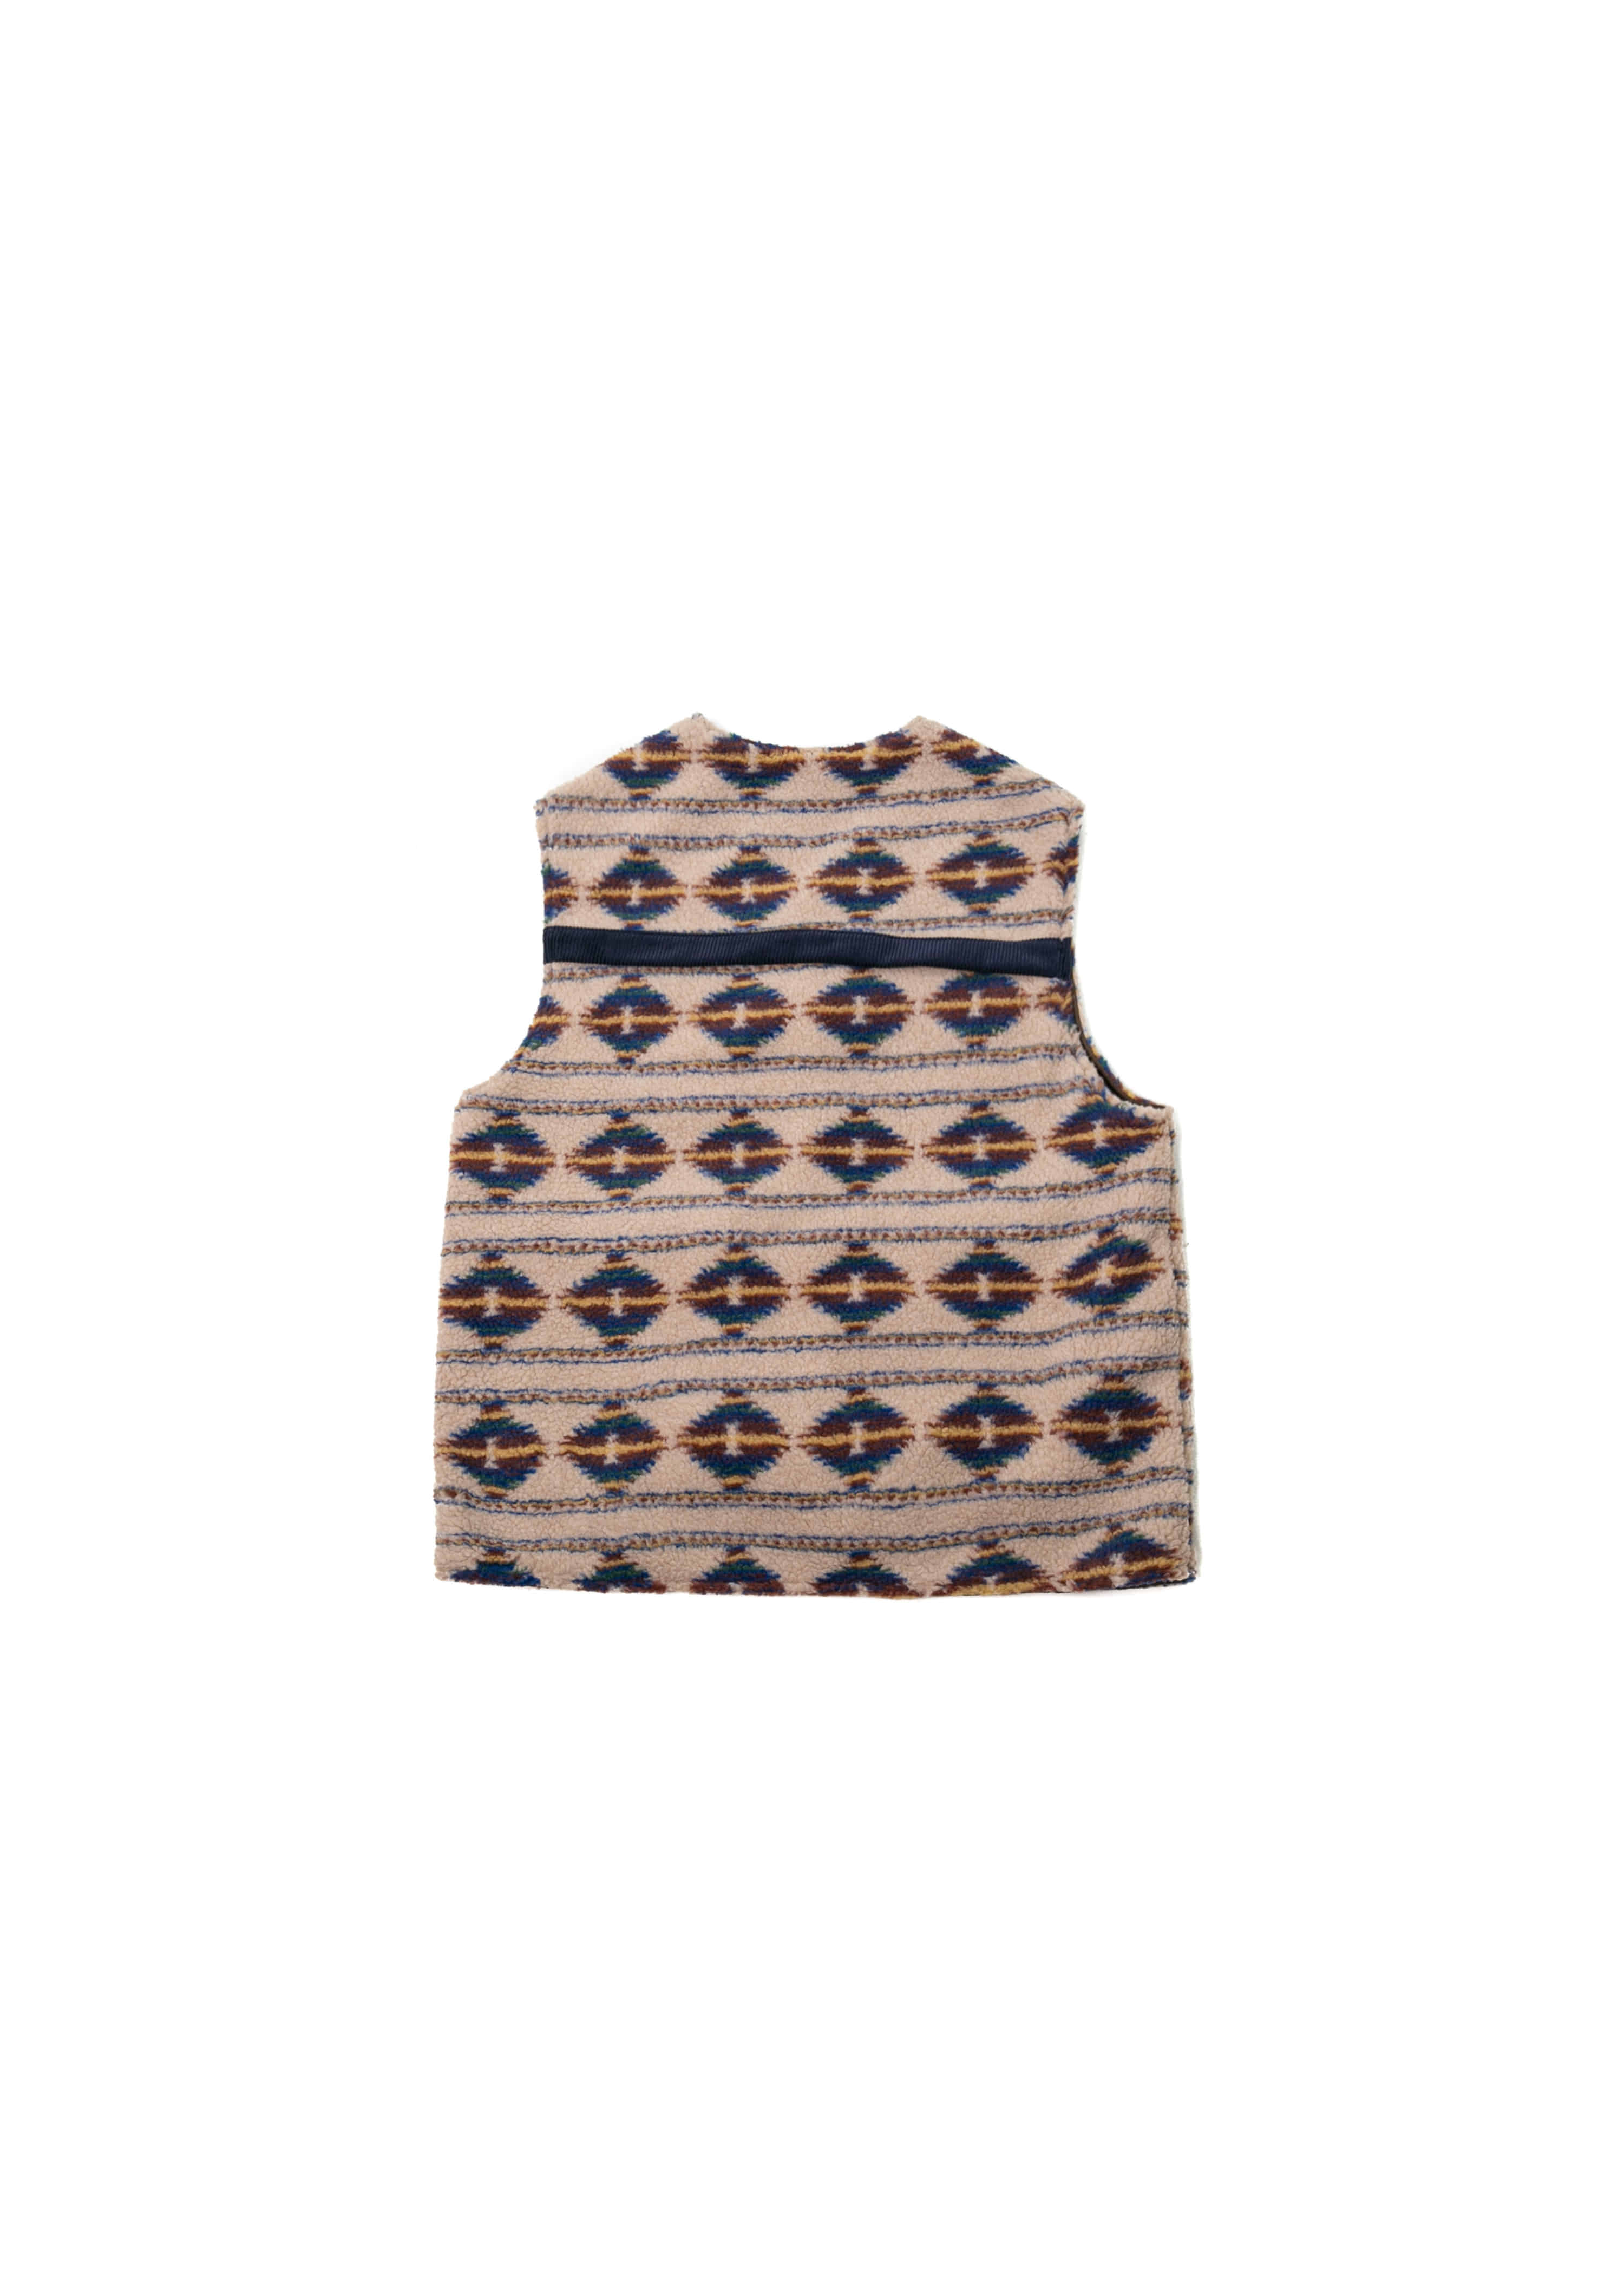 Reversible Navajo Fleece Vest - Beige